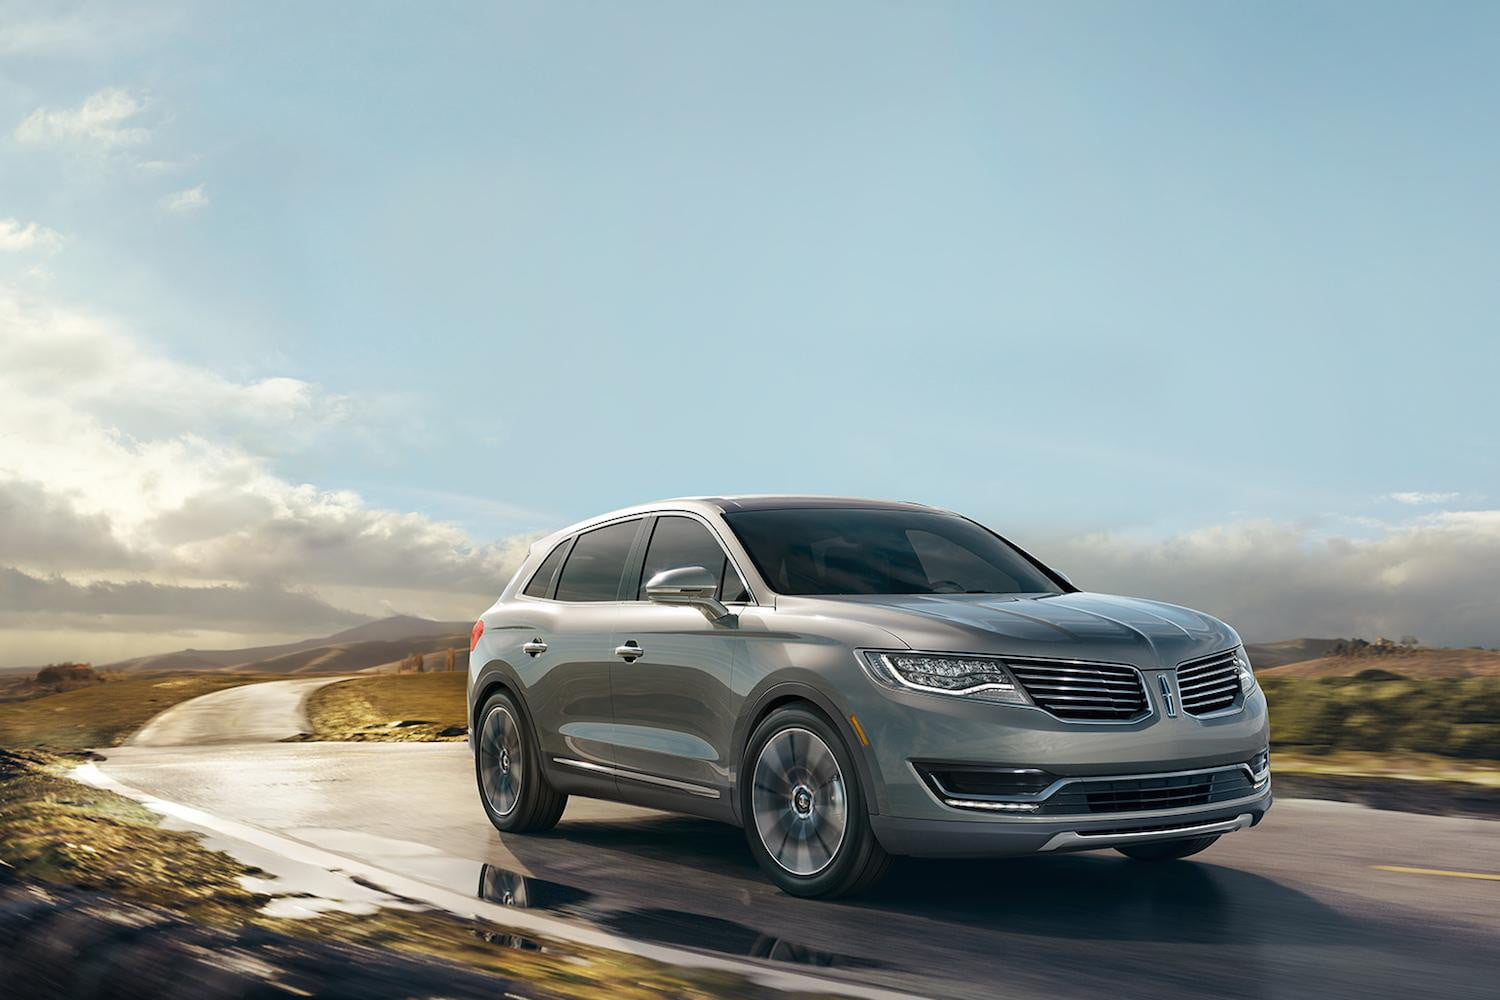 2016 Lincoln Mkx Leaked Images And Details Digital Trends